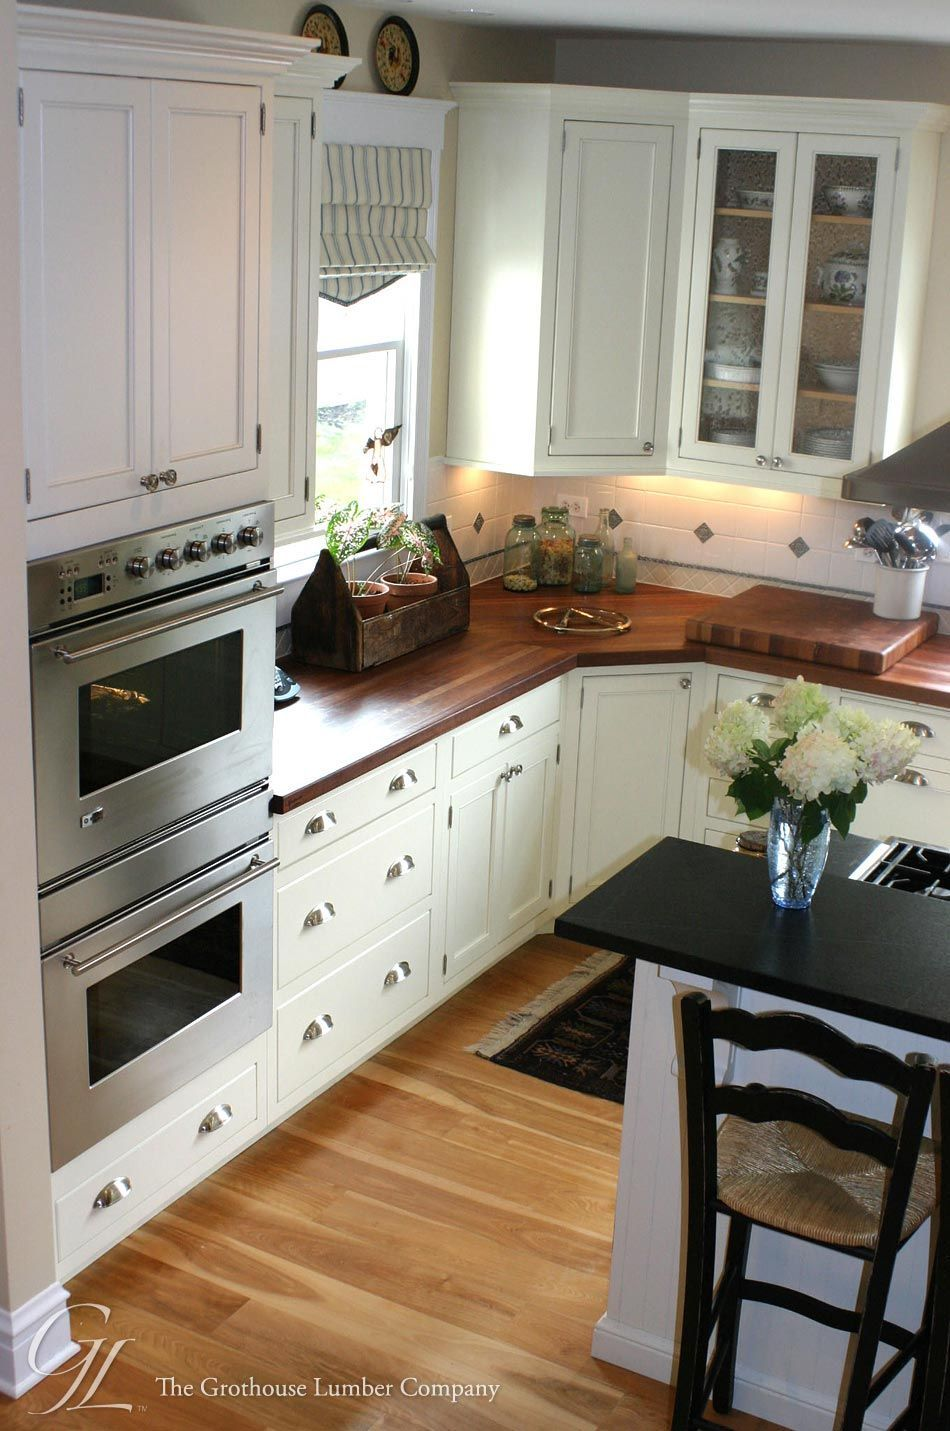 Custom American Cherry Wood Countertop Wood Countertops Kitchen Wood Countertops Black Kitchen Cabinets